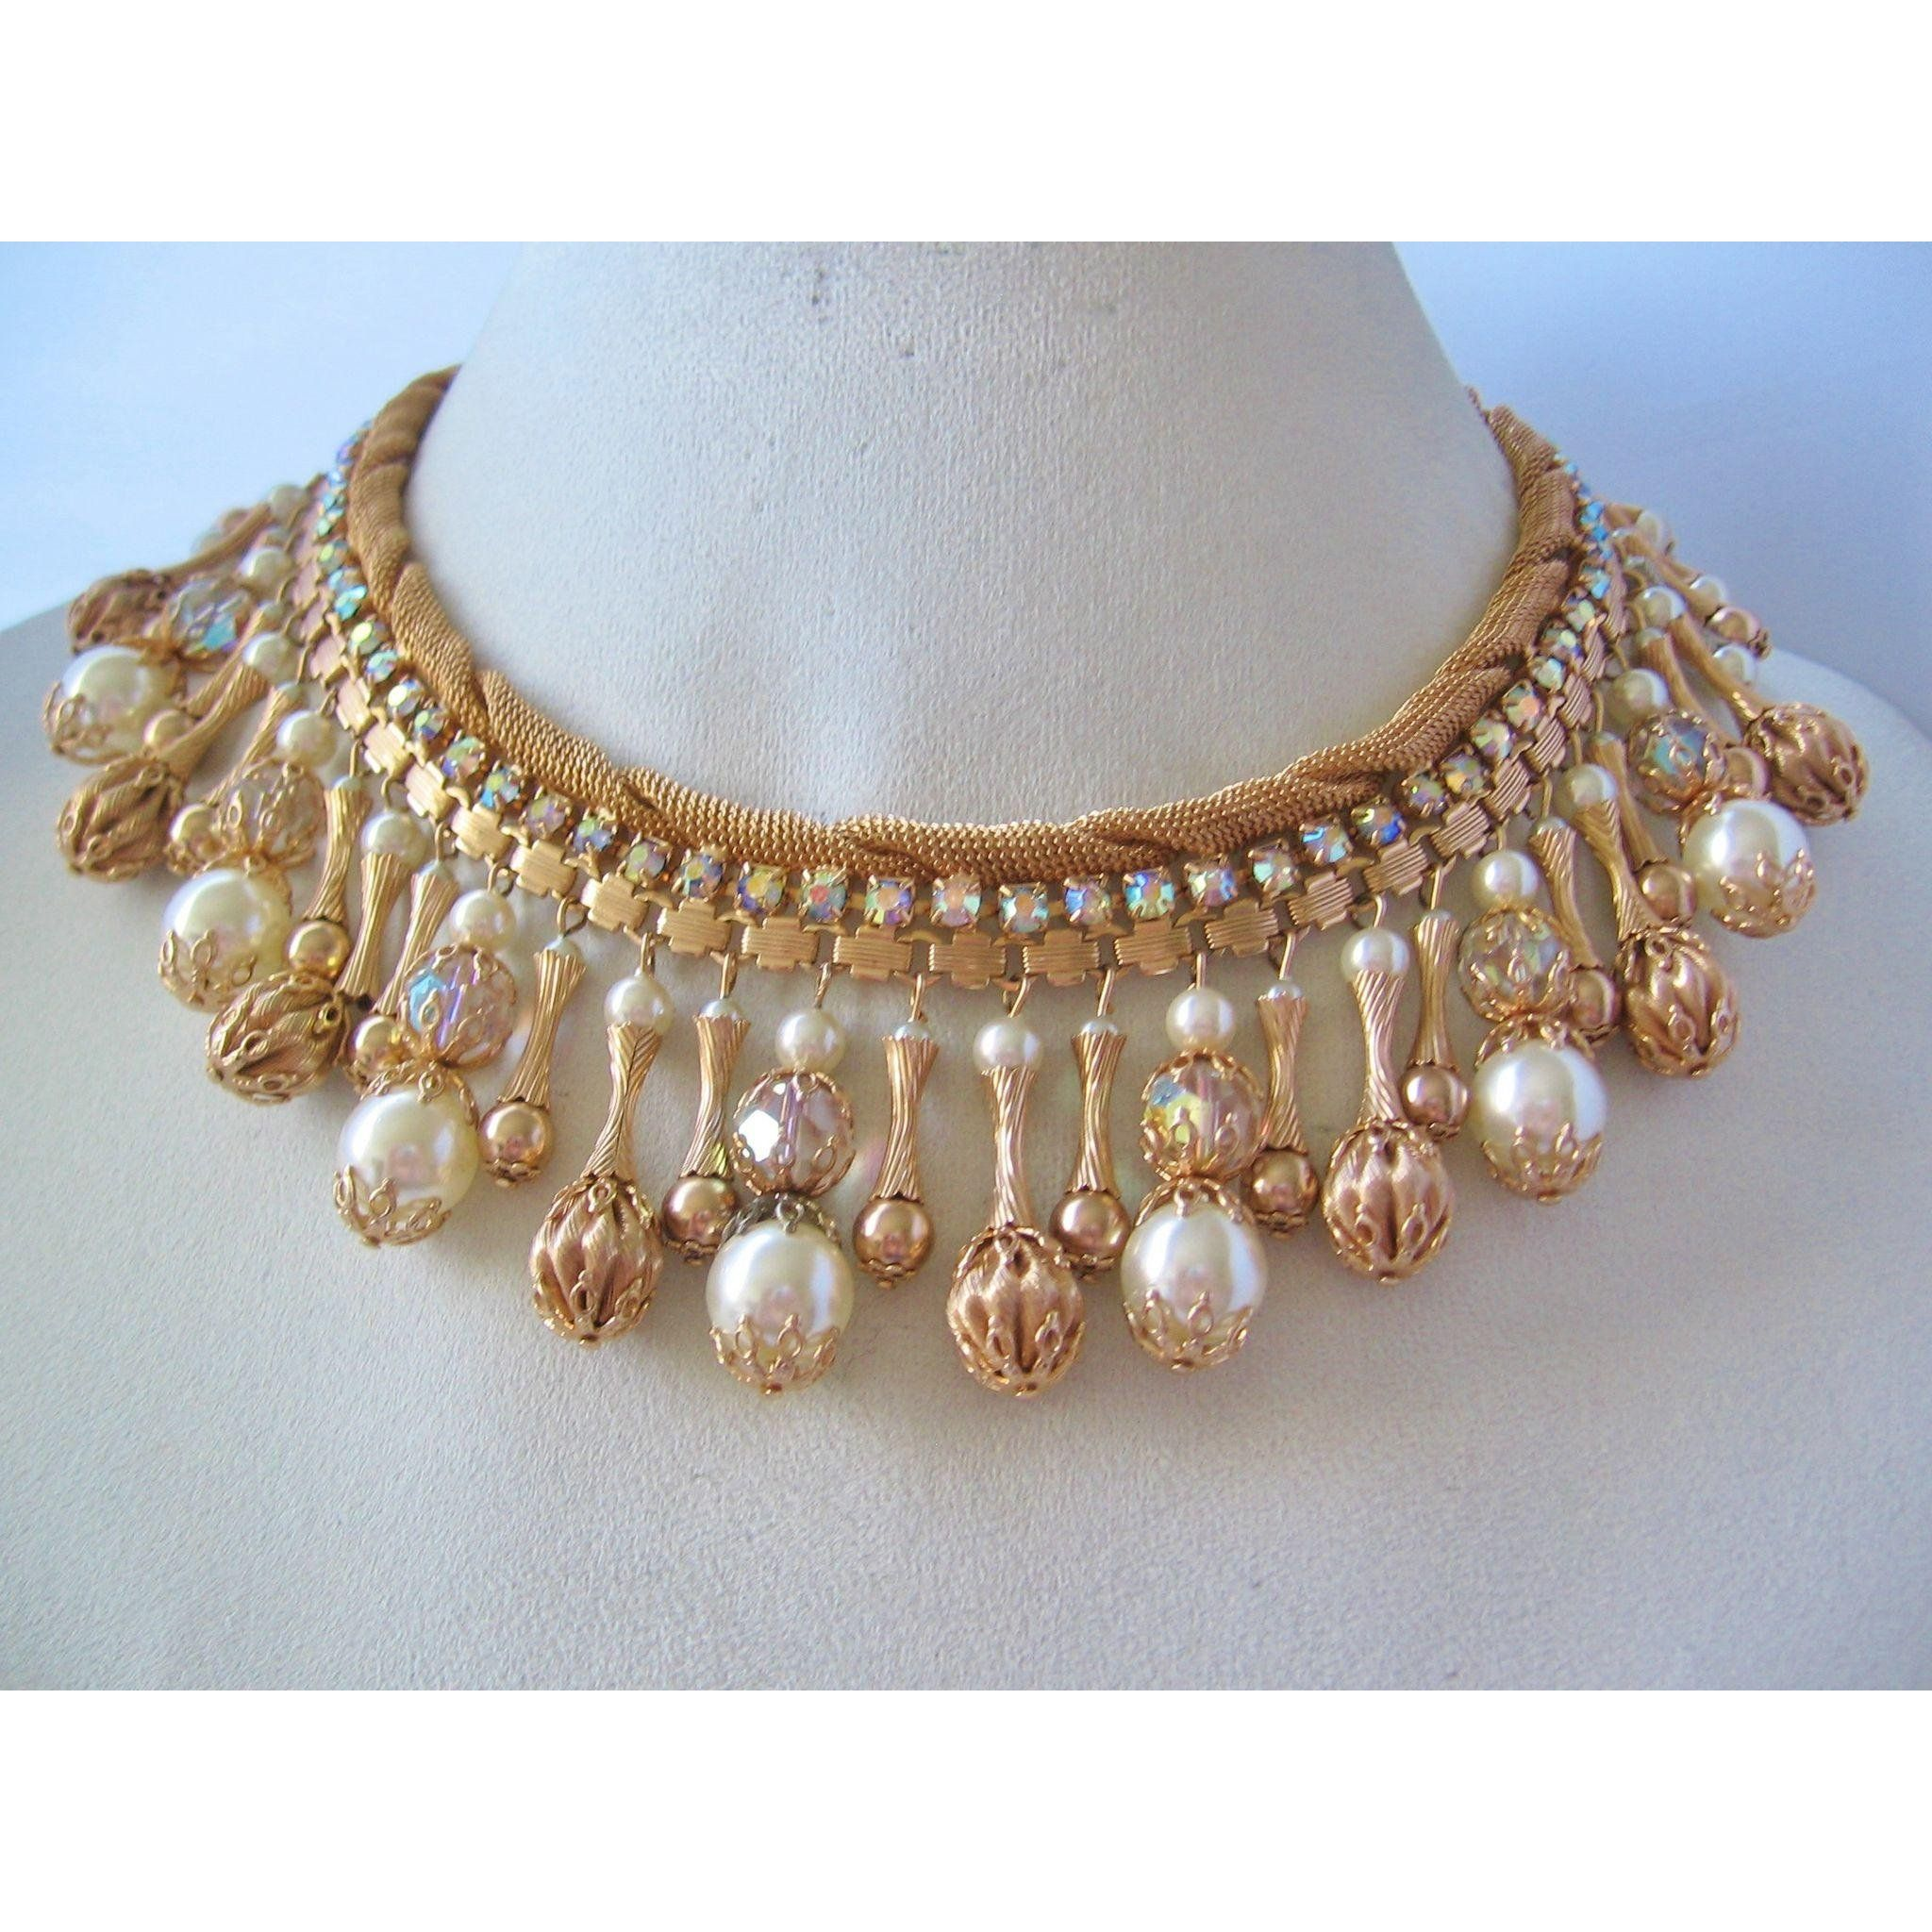 98cff55bde1c4 Vintage Fabulous Mid Century Bib Necklace with Gold tone Beads ...